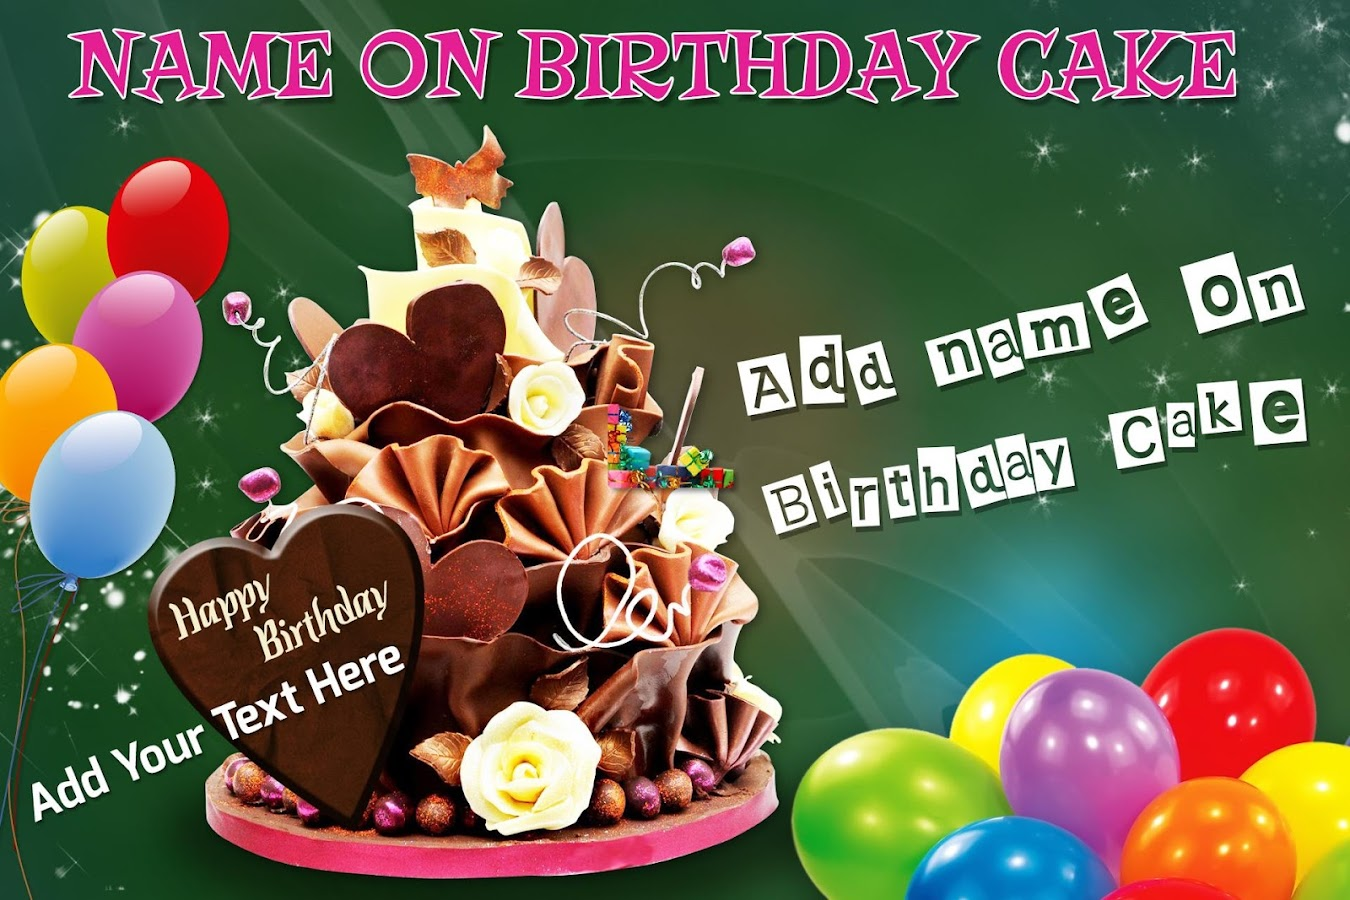 name on birthday cake android apps on google play on yummy birthday cakes free download with name